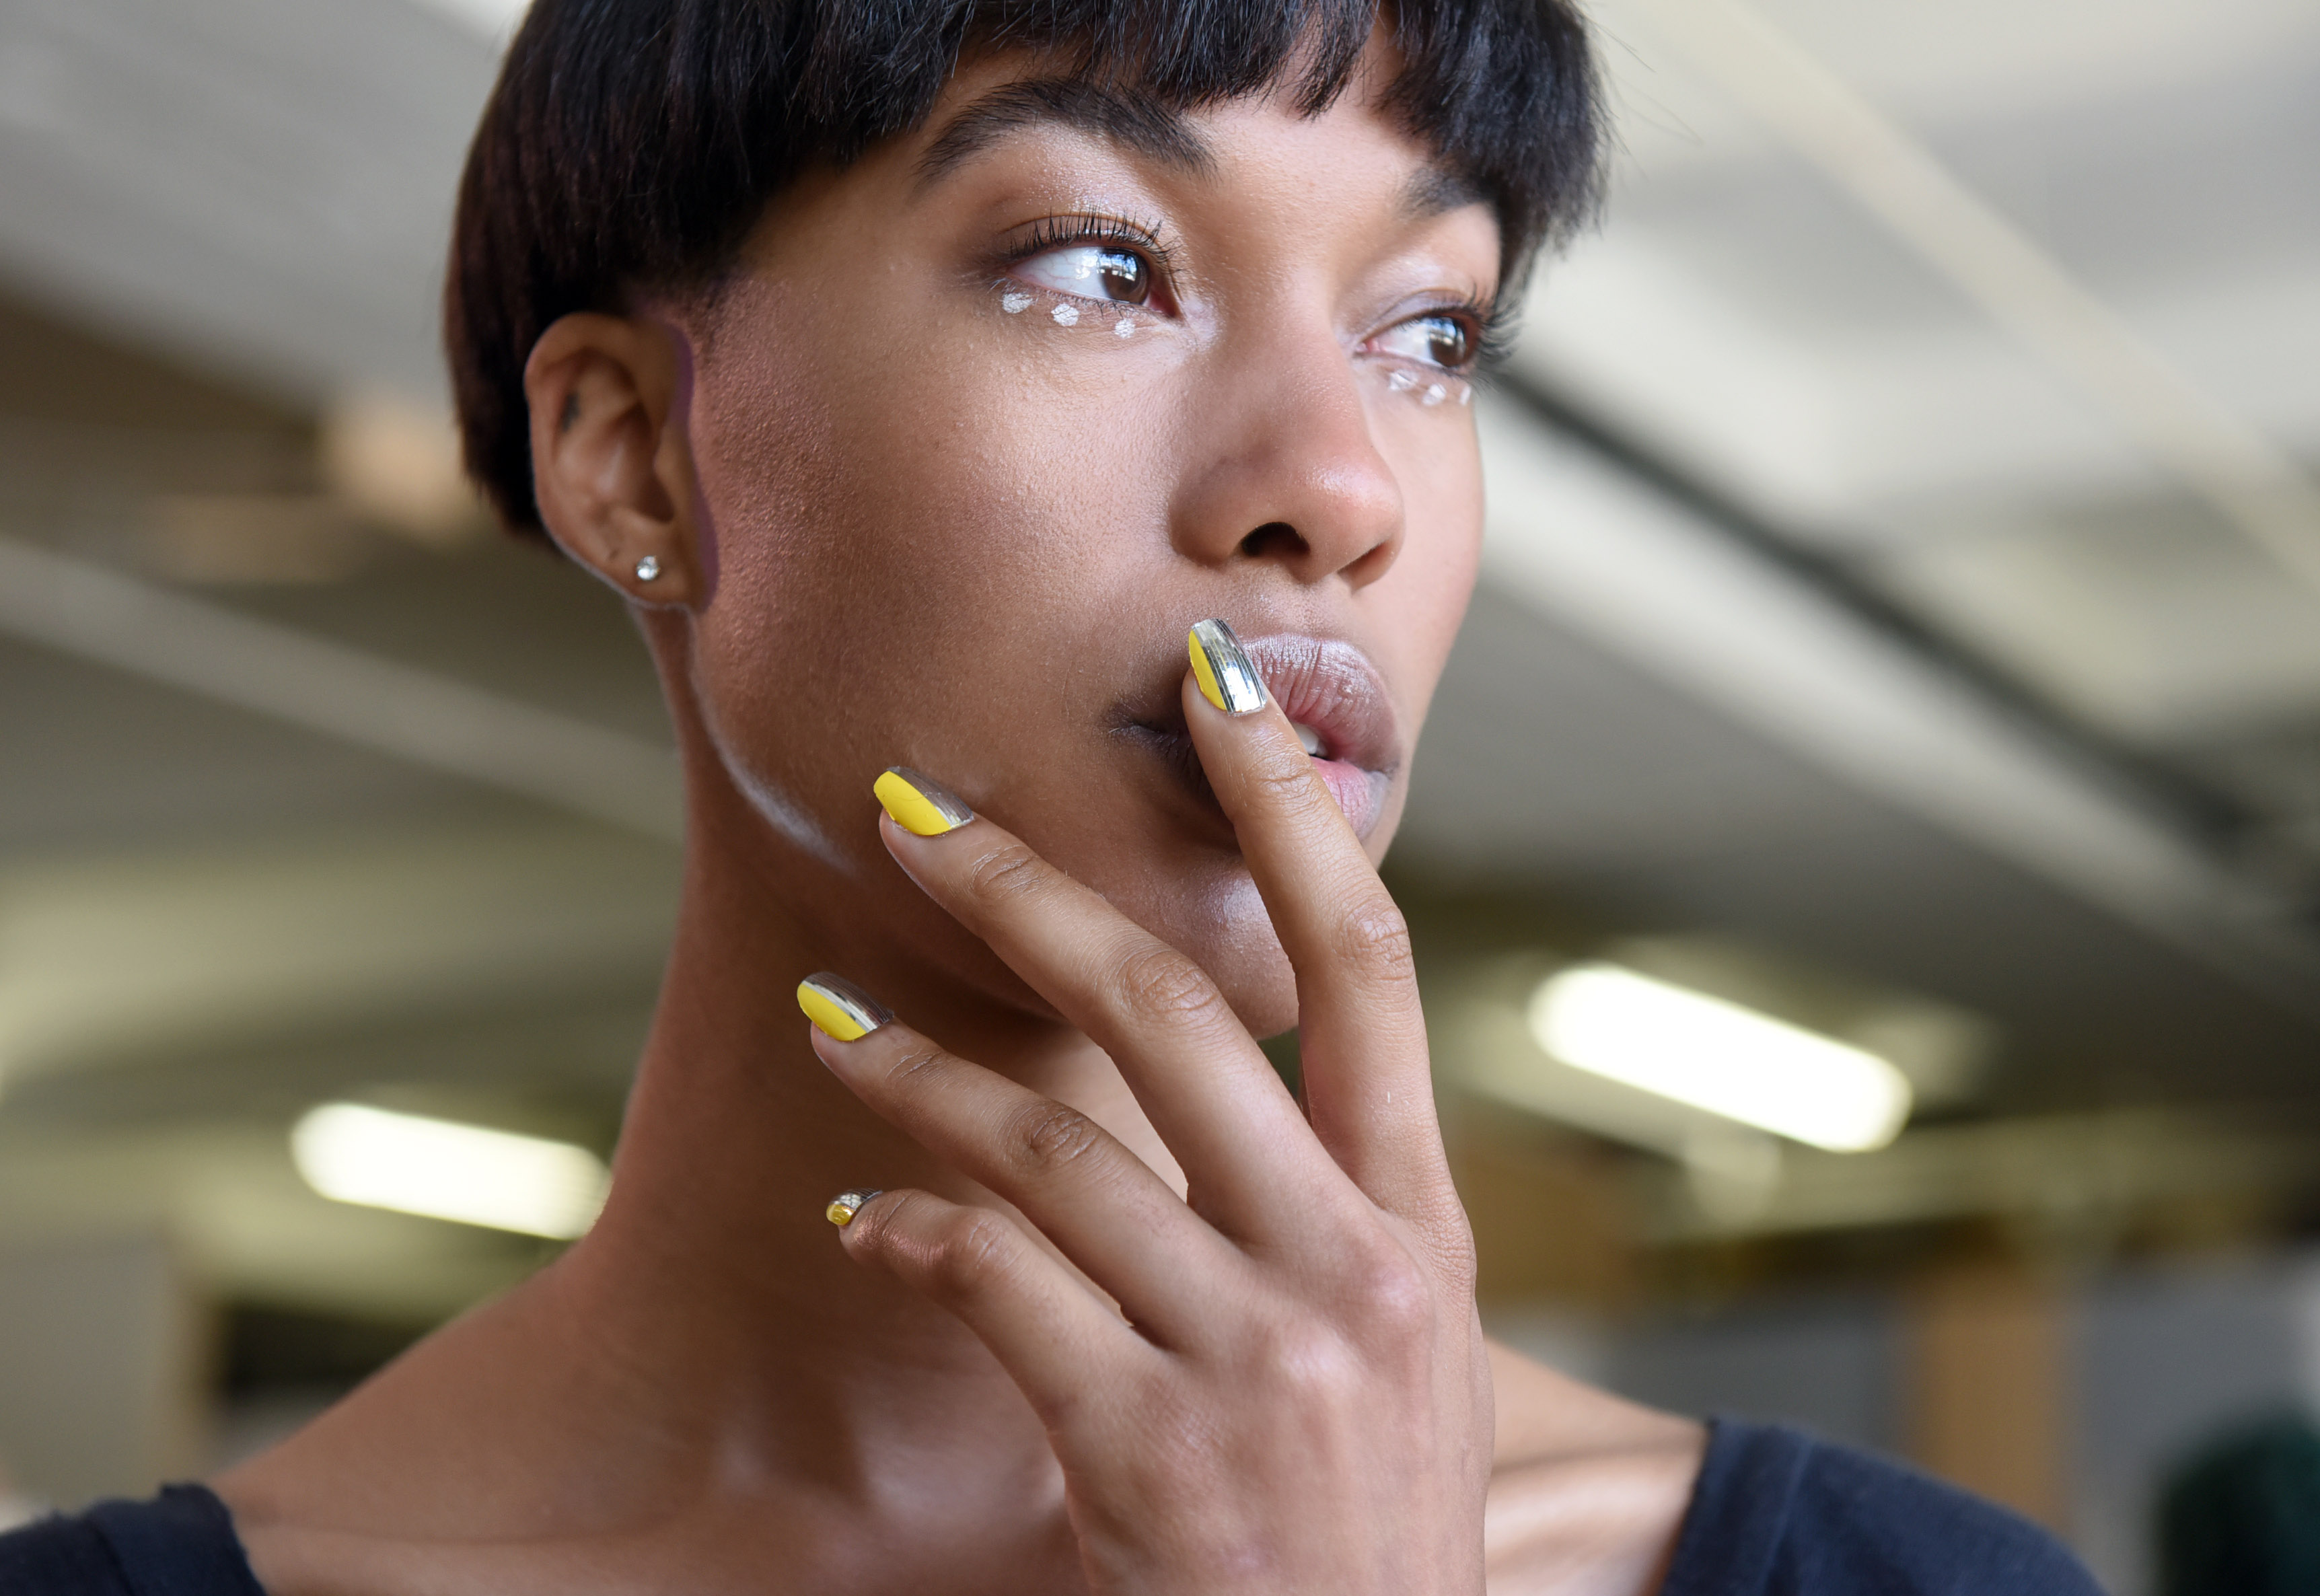 KISS Nails at Daniel Silverstain Spring Summer 2016 during New York Fashion Week, Wednesday, Sept. 9, 2015.  (Photo by Diane Bondareff for KISS Nails)